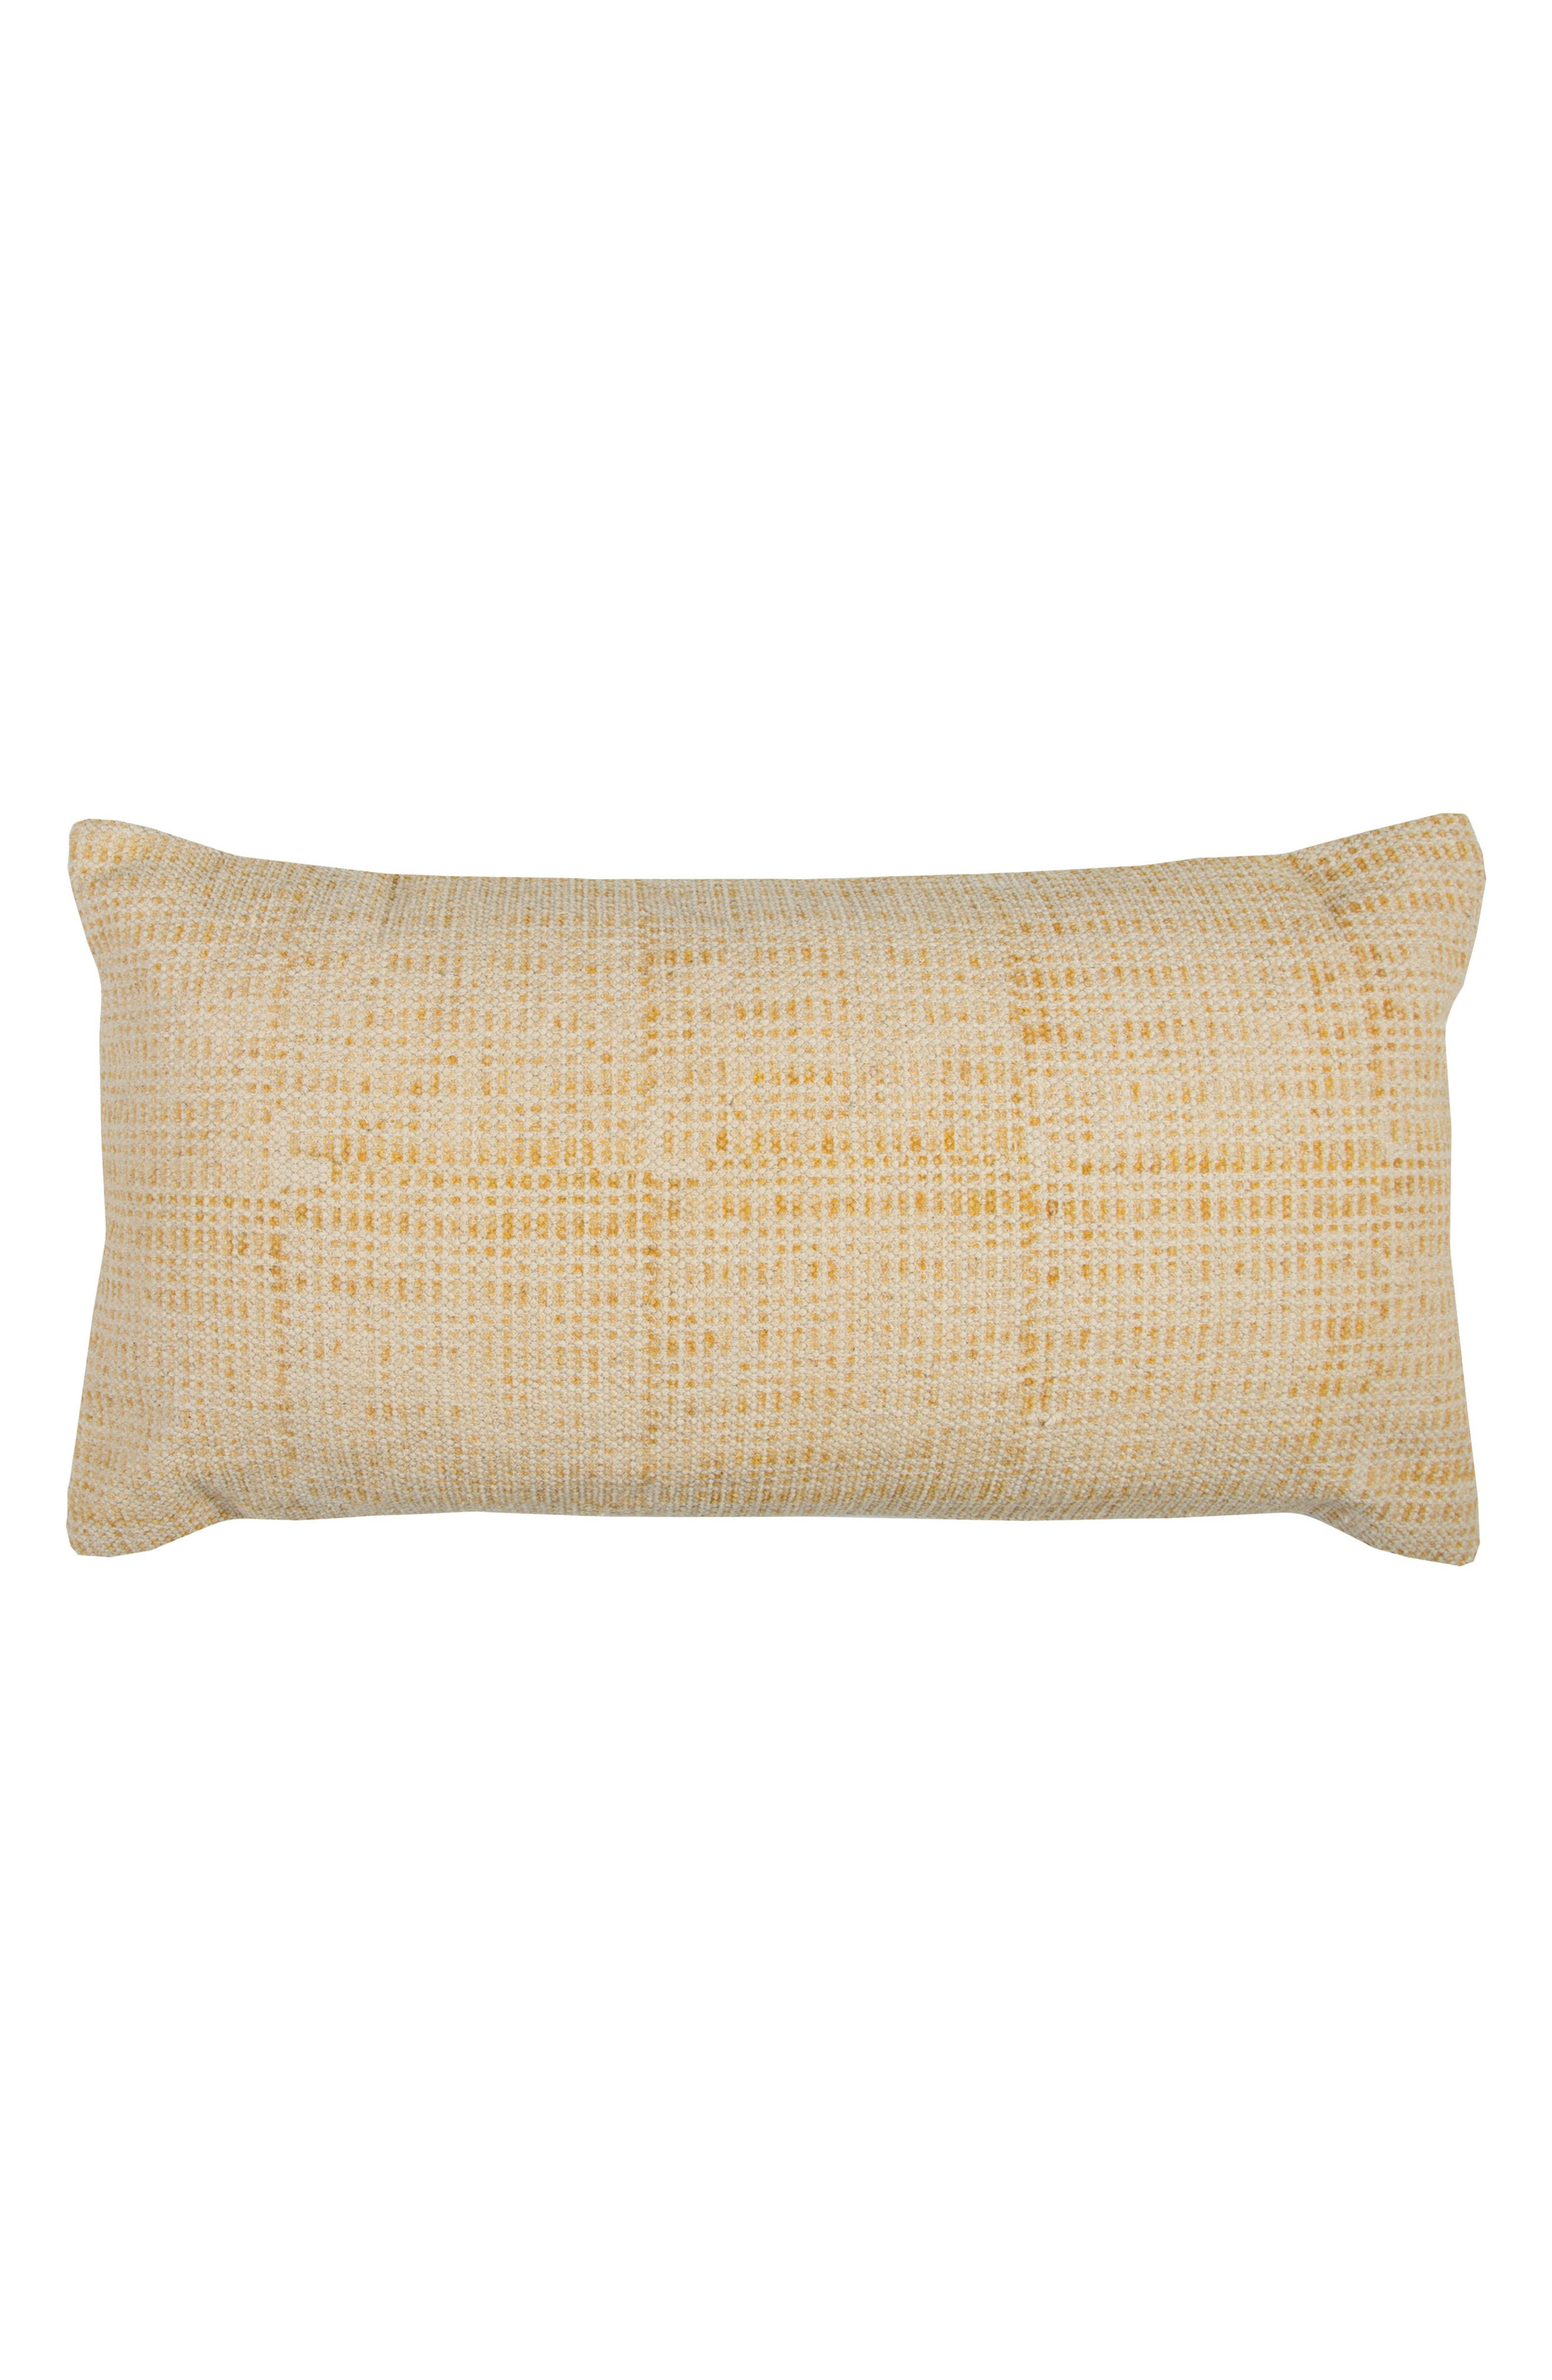 Woven Accent Pillow,                         Main,                         color, Yellow